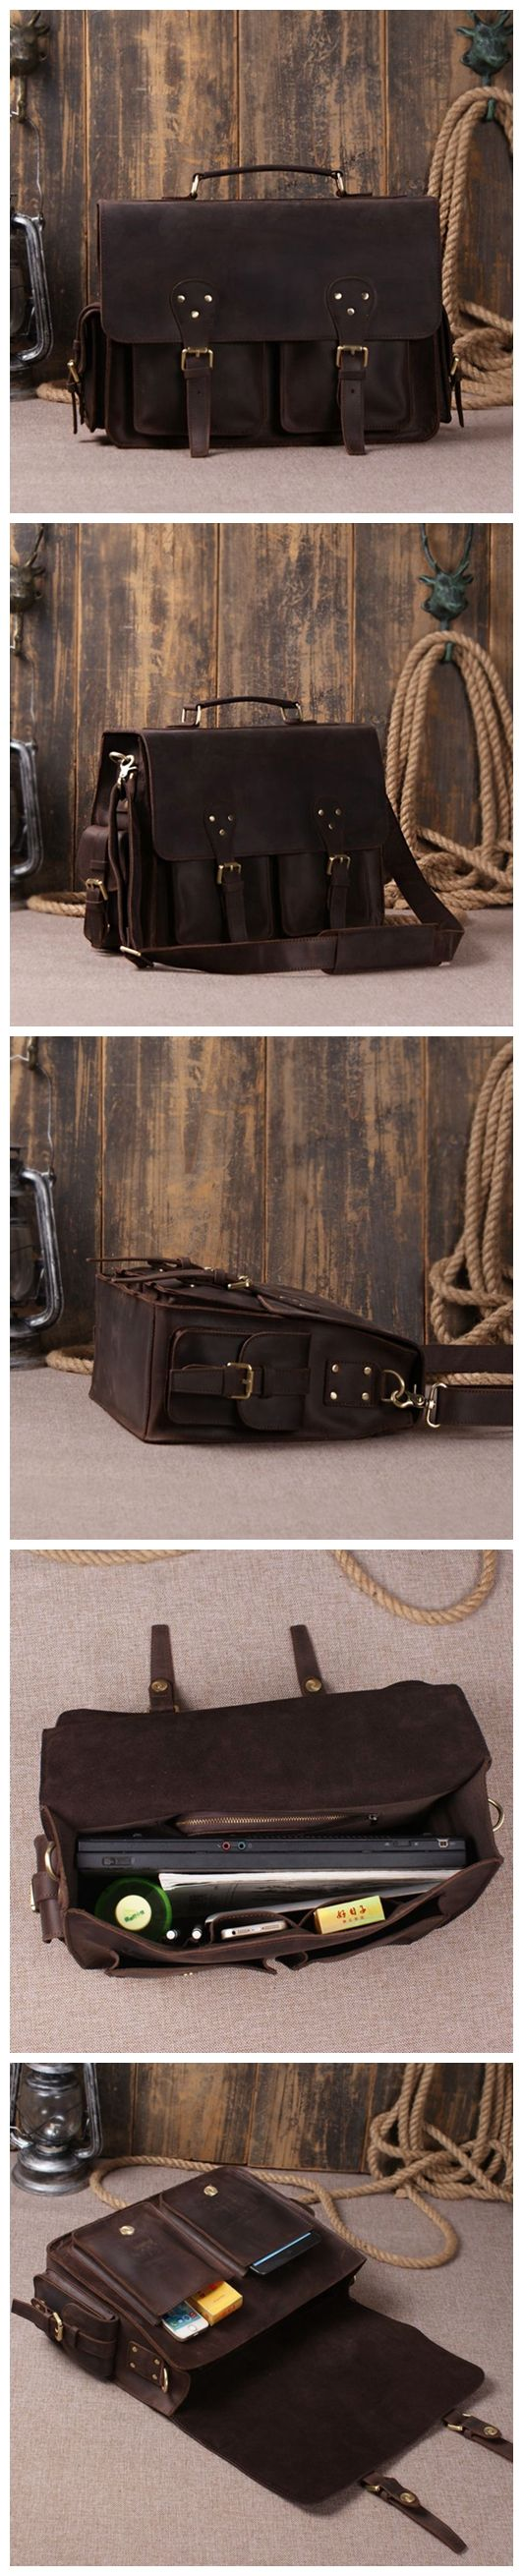 HANDCRAFTED RUSTIC LEATHER BRIEFCASE, MESSENGER BAG, LAPTOP BAG, MEN'S HANDBAG, MEN'S GIFT, LEATHER HANDMADE BAG, LEATHER GOODS, LEATHER CASE